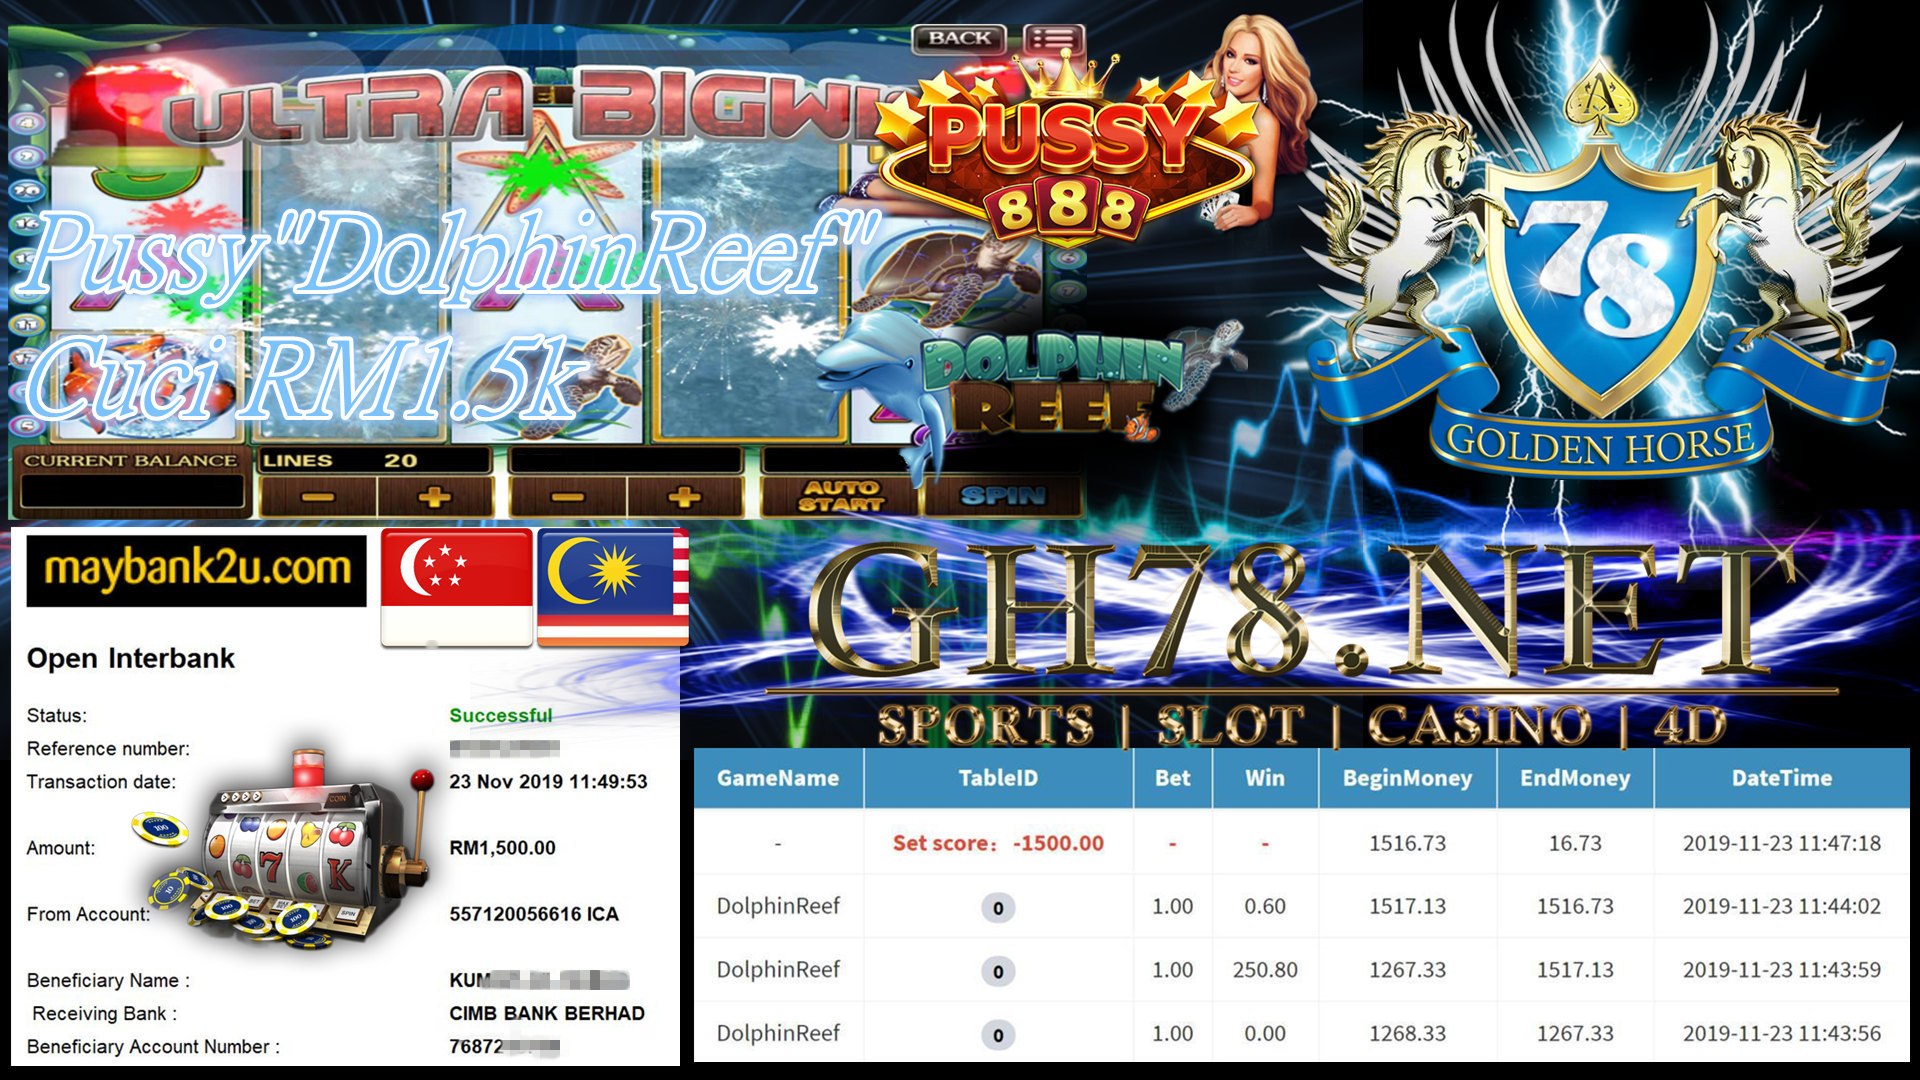 PUSSY888 MAIN DOLPHIN REEF CUCI RM1500 !!